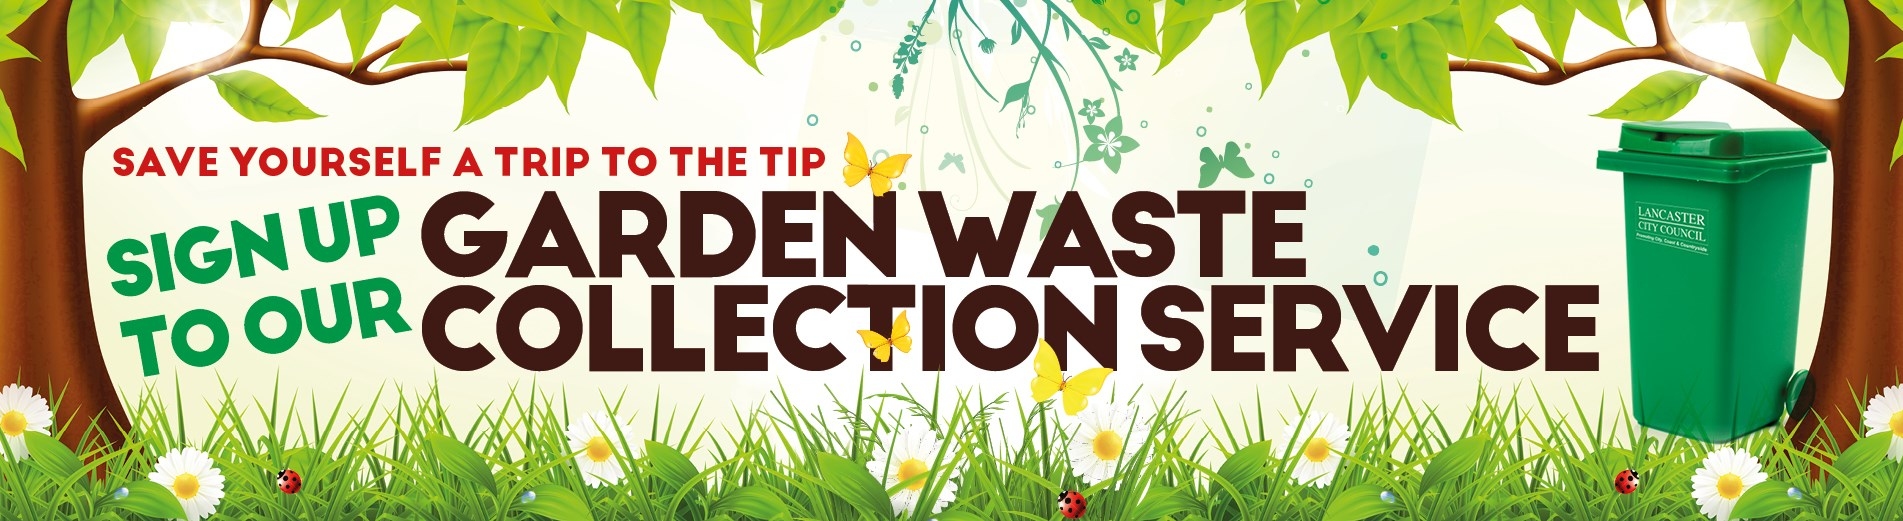 Have you renewed your garden waste subscription for 2019/2020